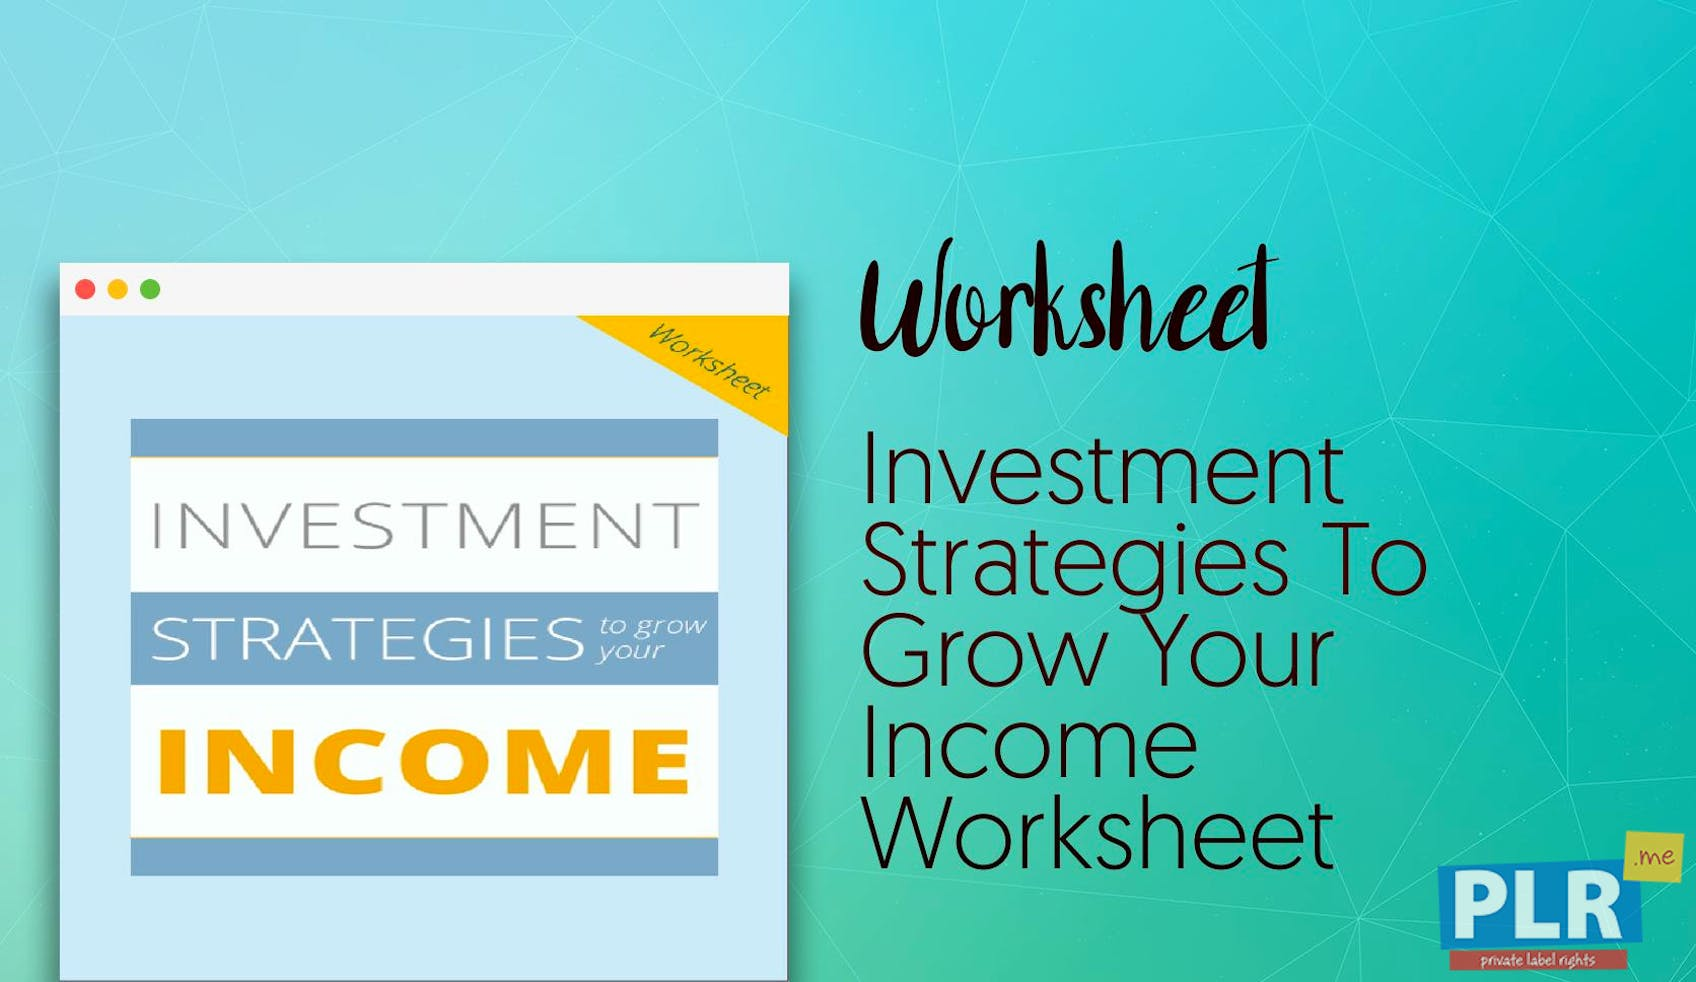 PLR Worksheets - Investment Strategies To Grow Your Income Worksheet ...